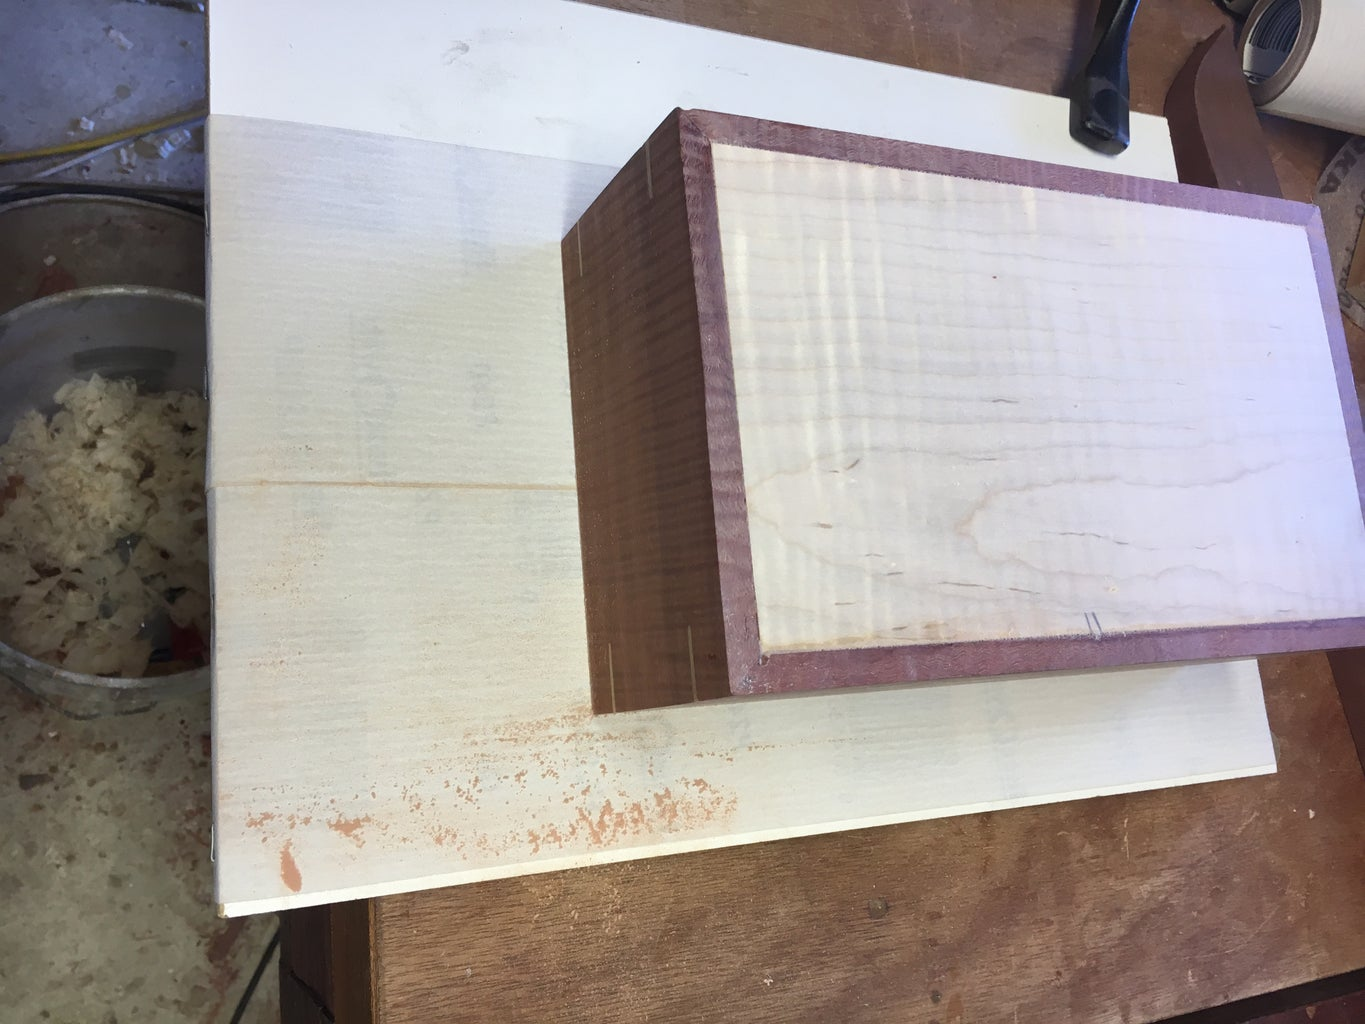 Fit the Bottom Into the Box